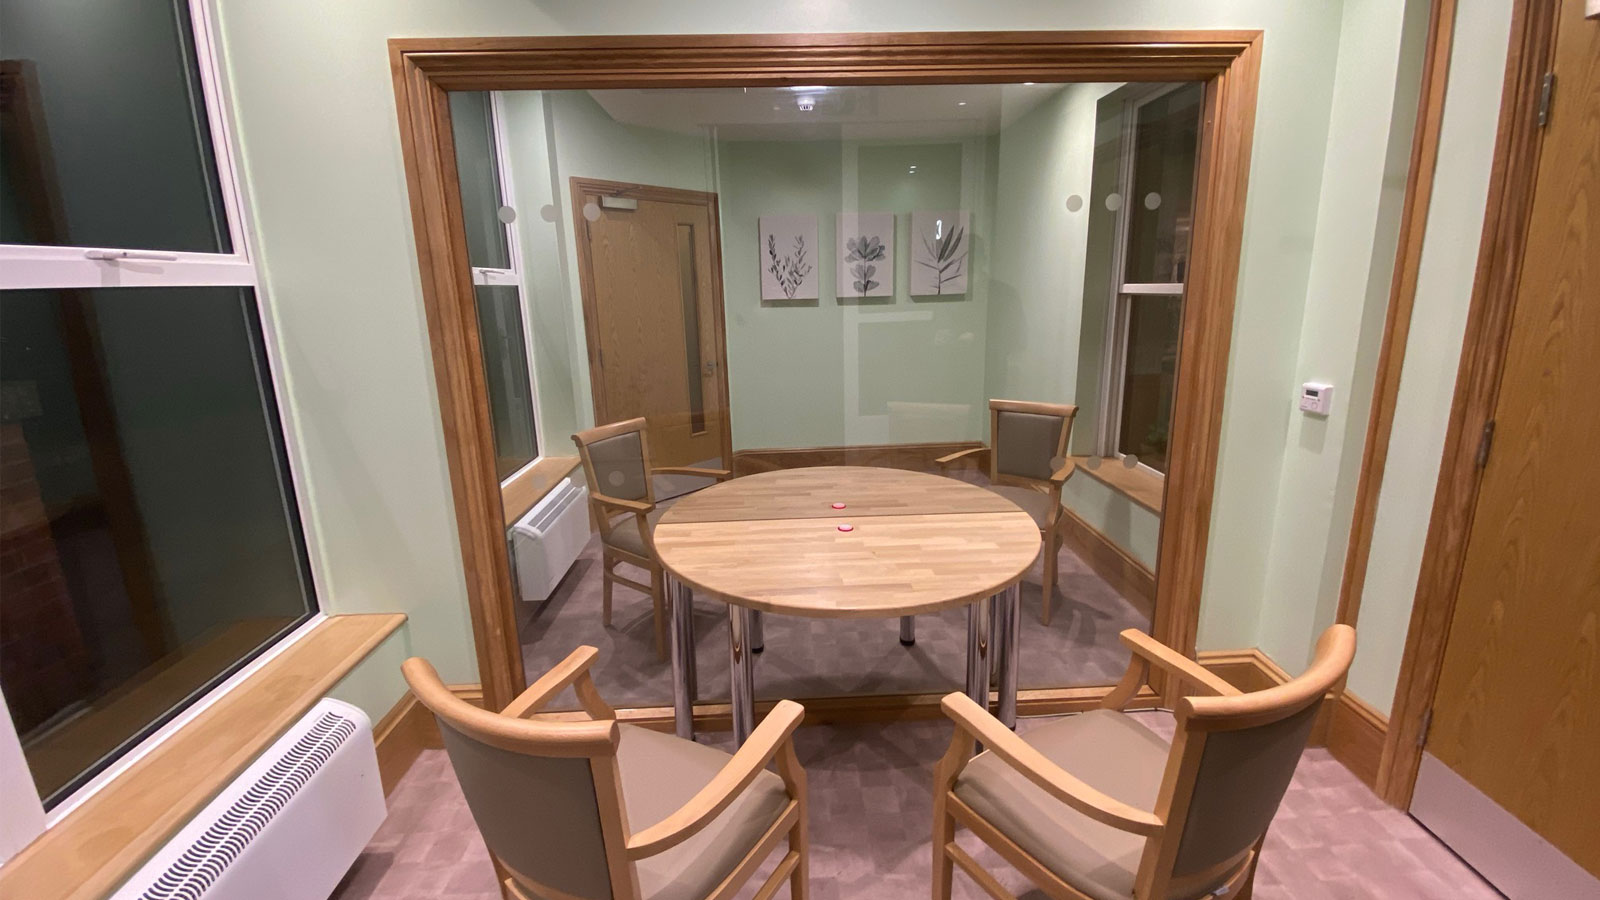 Shure & SFL Provides Covid Secure Solution to Keep Care Home Residents Connected to Family and Friends